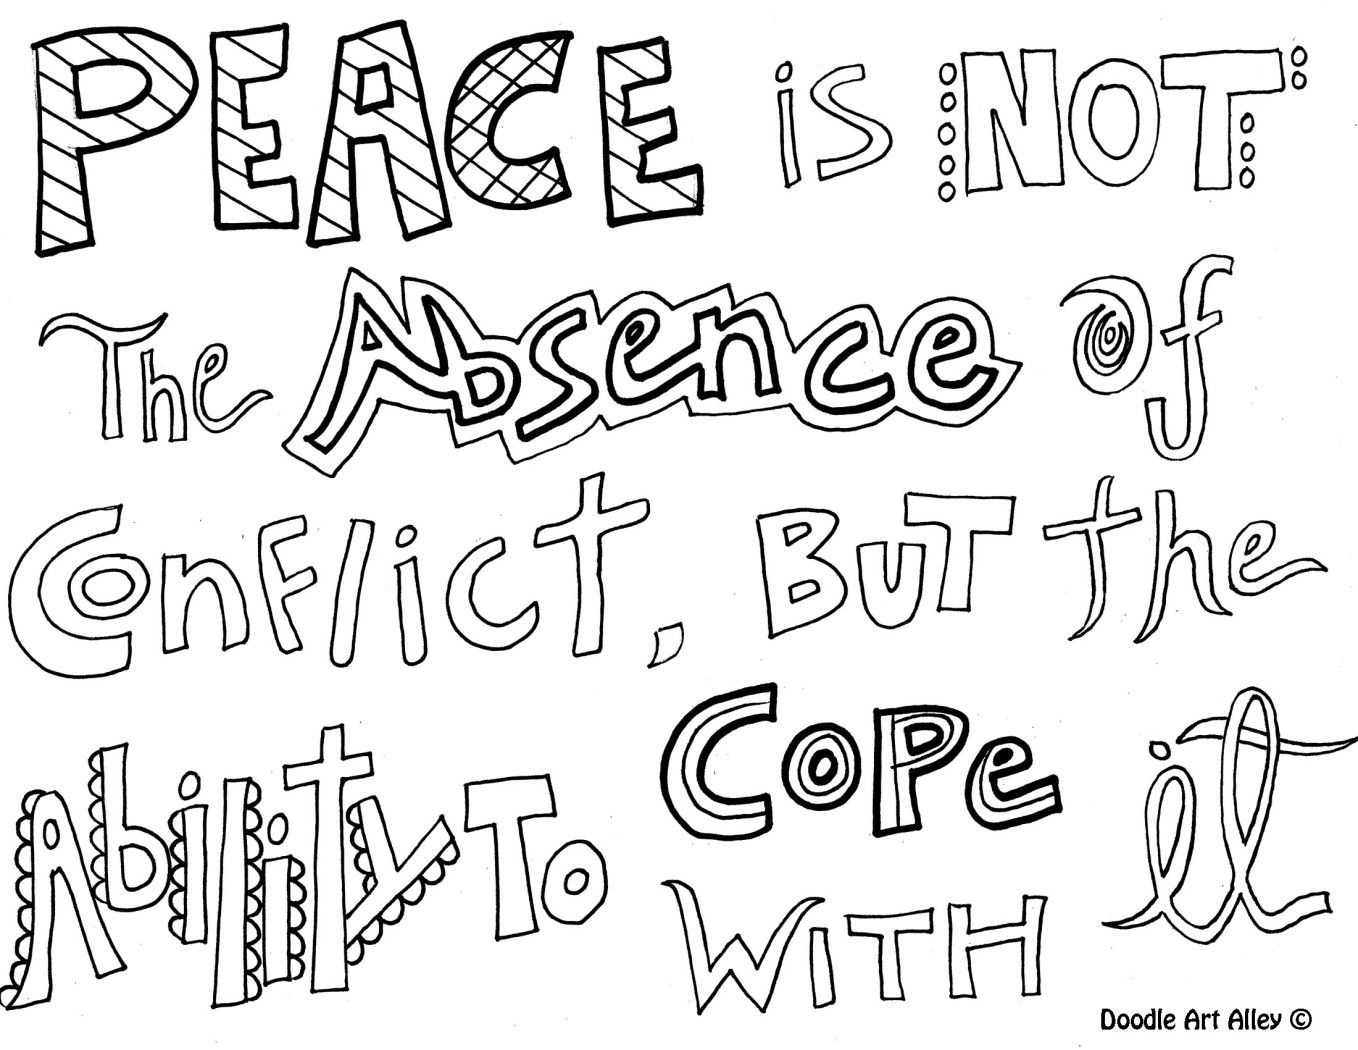 peaceconflict.jpg  Inspirational quotes coloring, Quote coloring